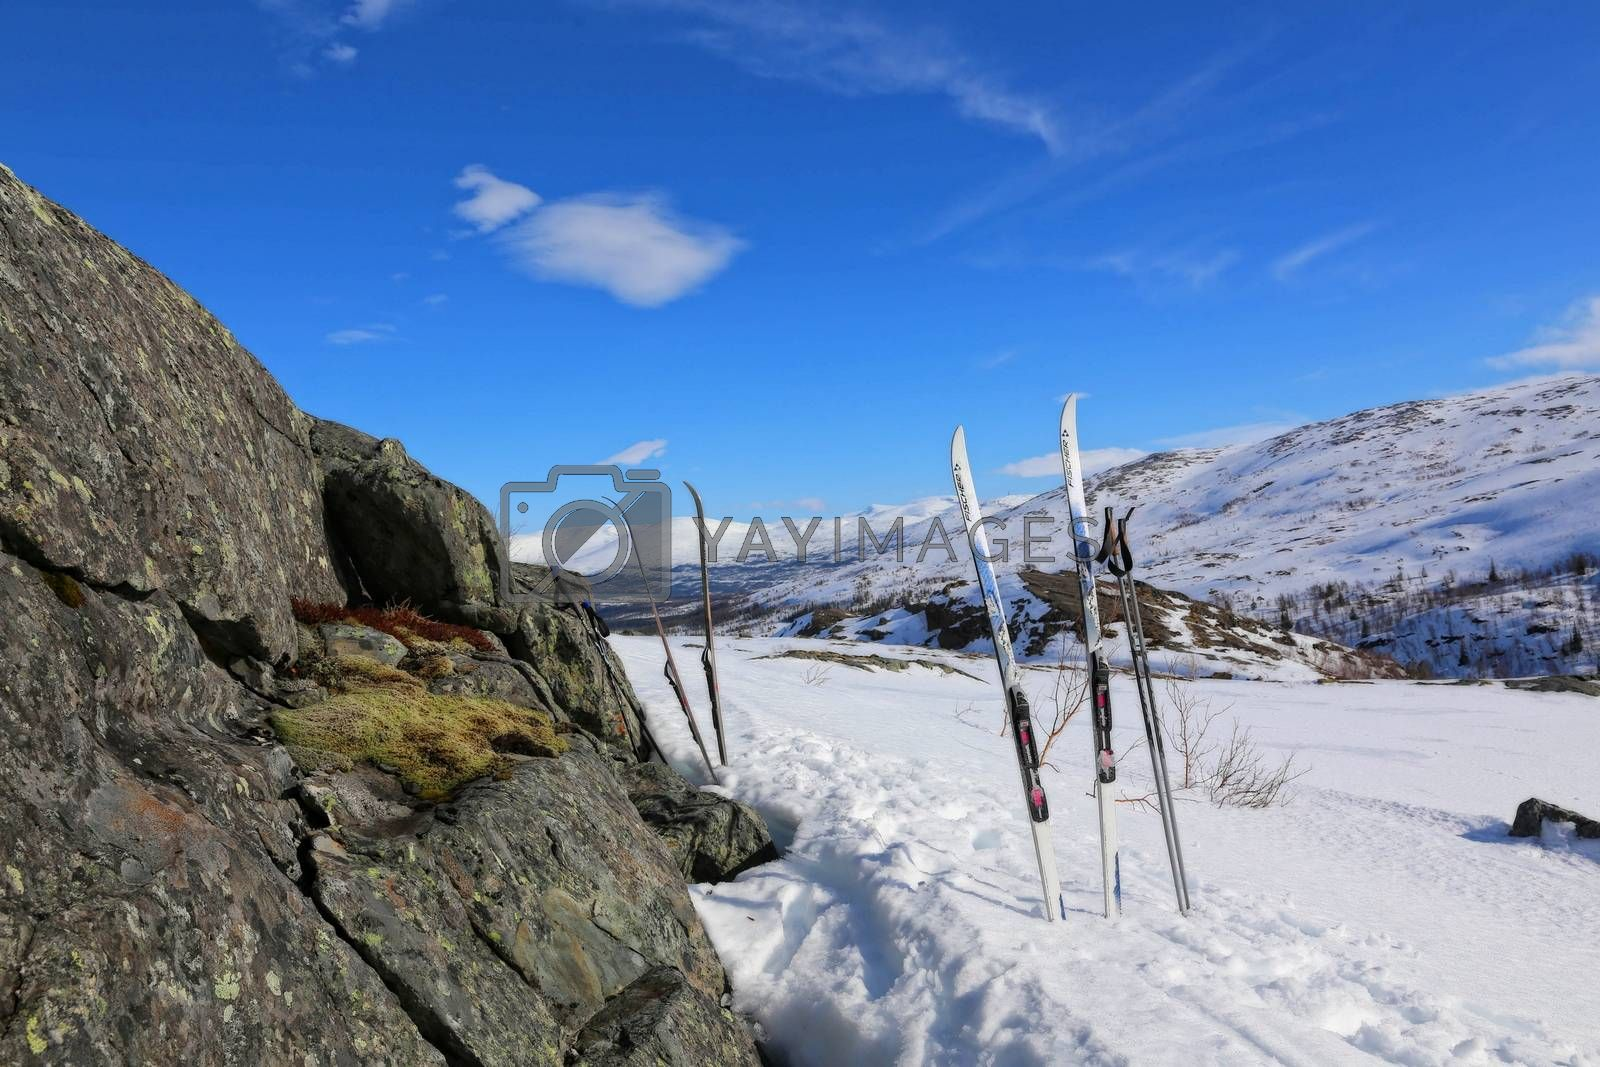 Royalty free image of Påskefjellet 2016 by post@bronn.no